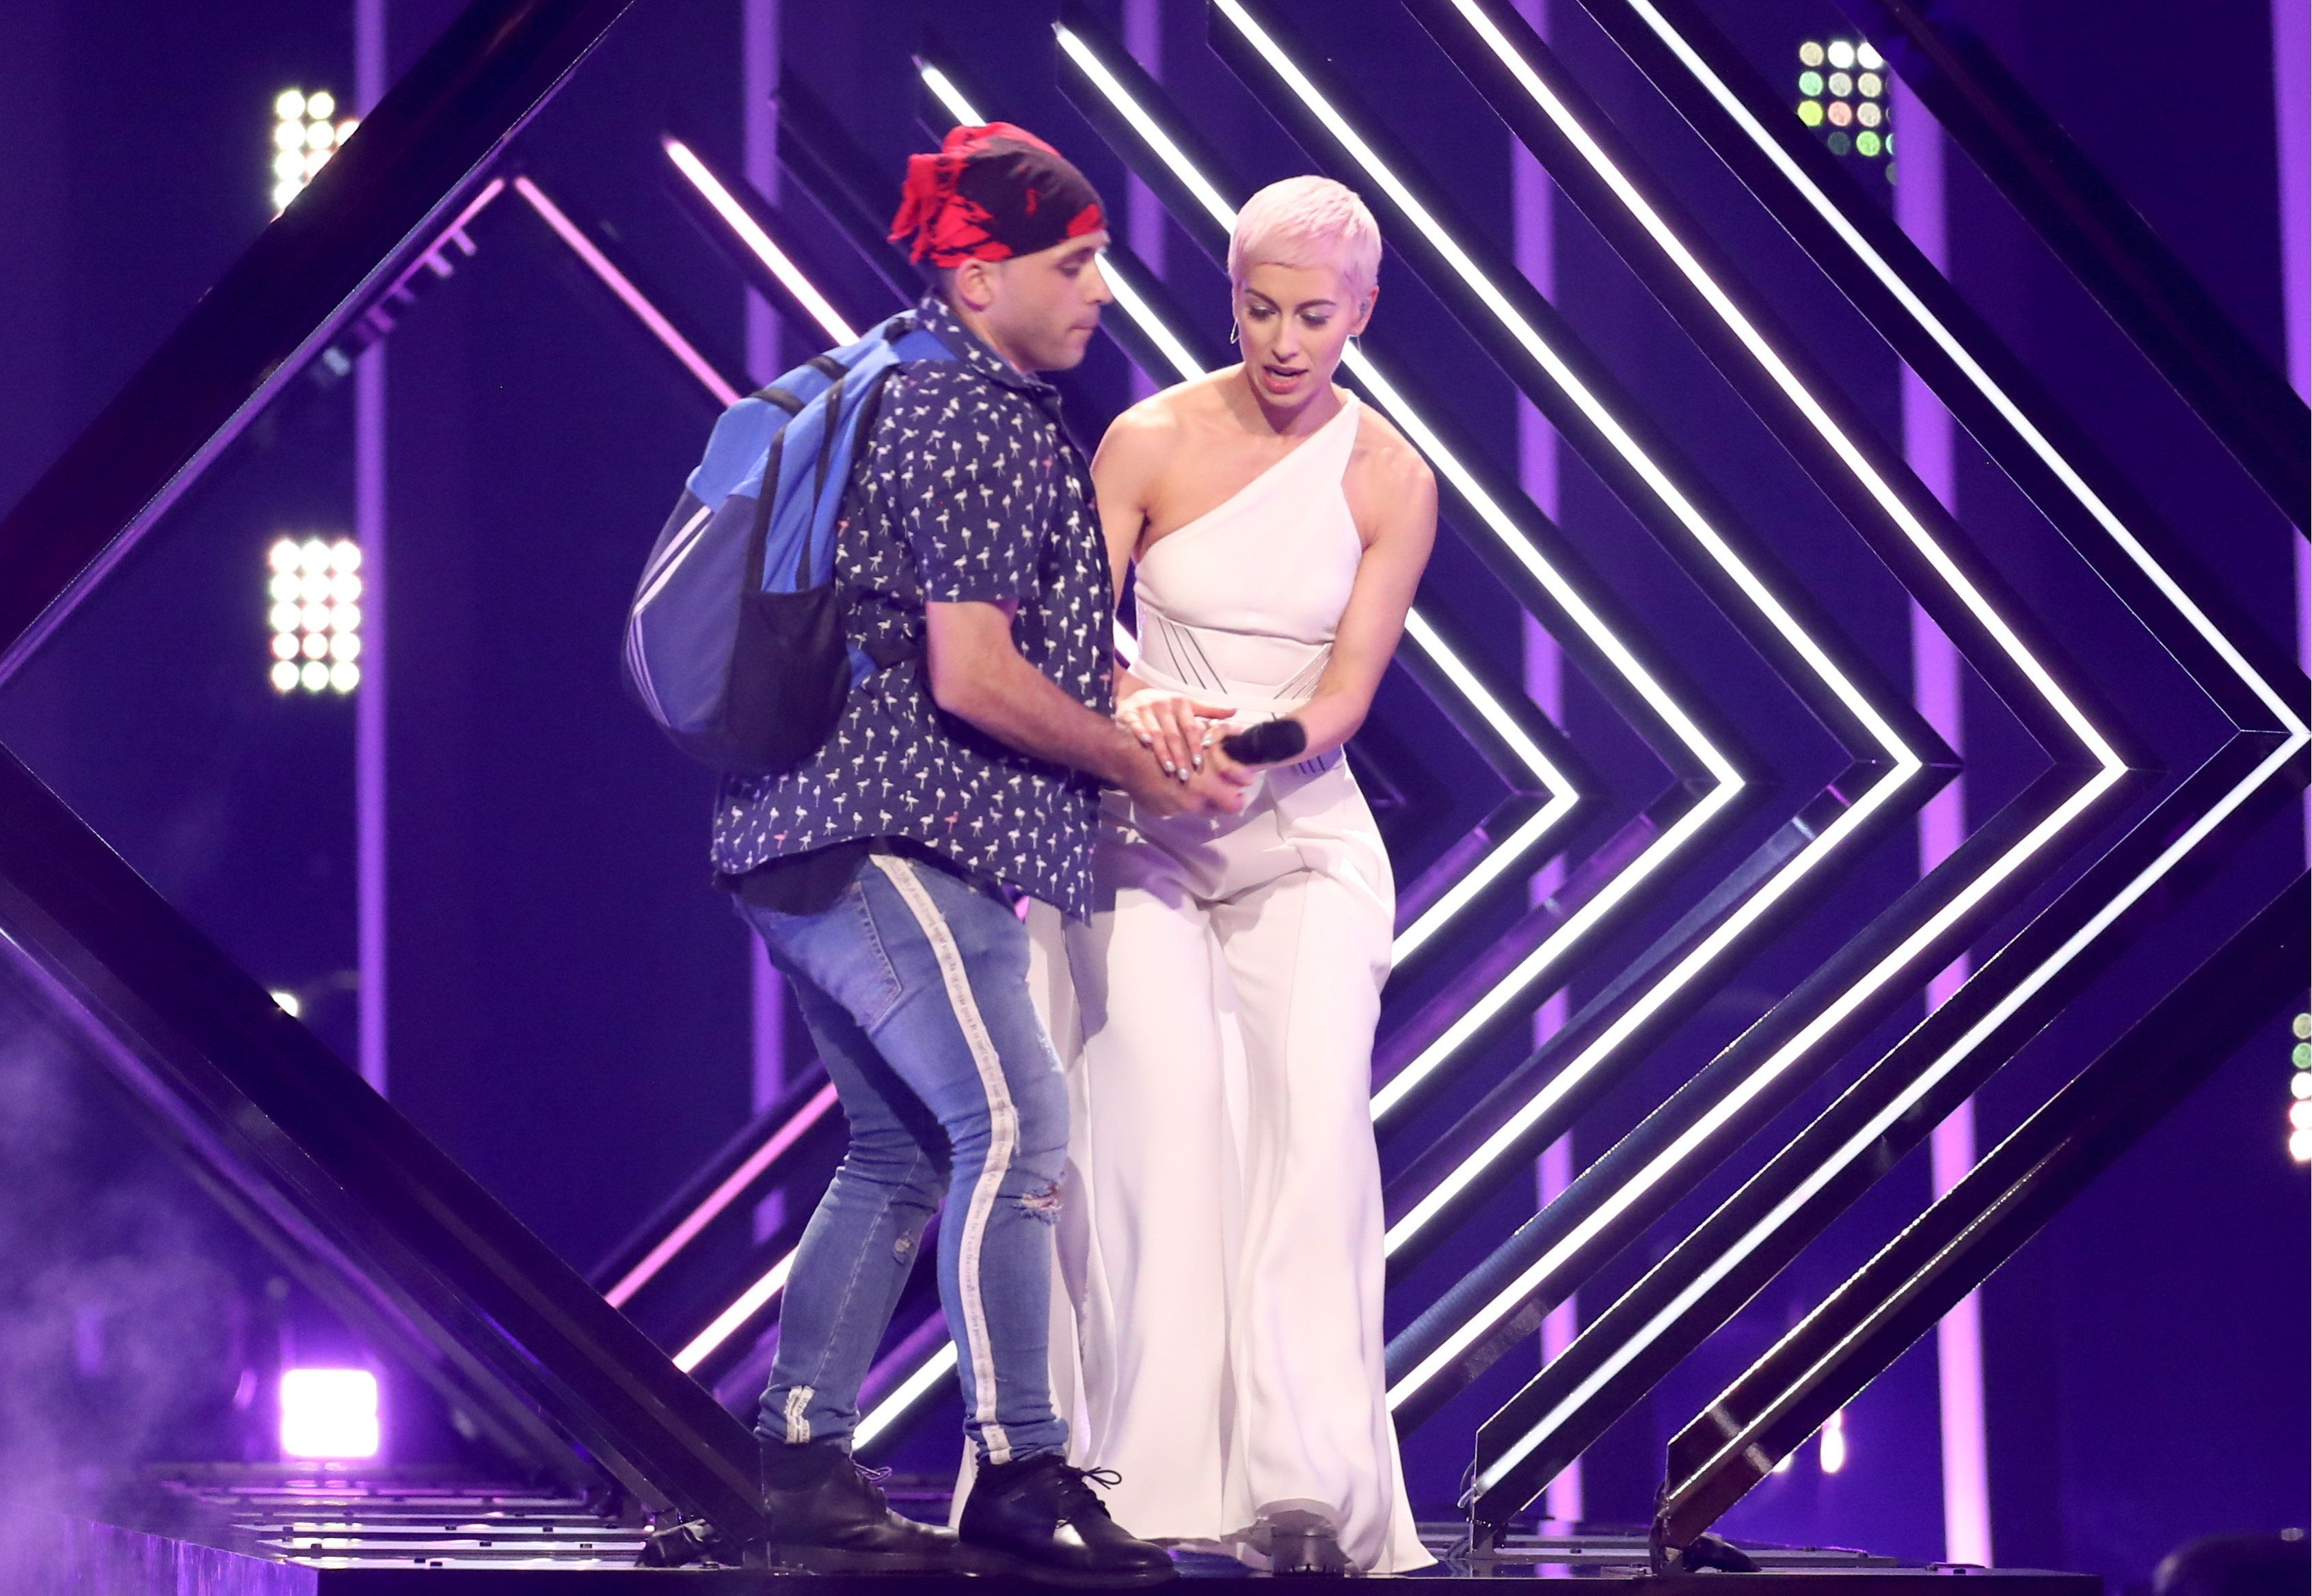 UK Eurovision Entrant SuRie Soldiers On With Performance Despite Stage Invasion